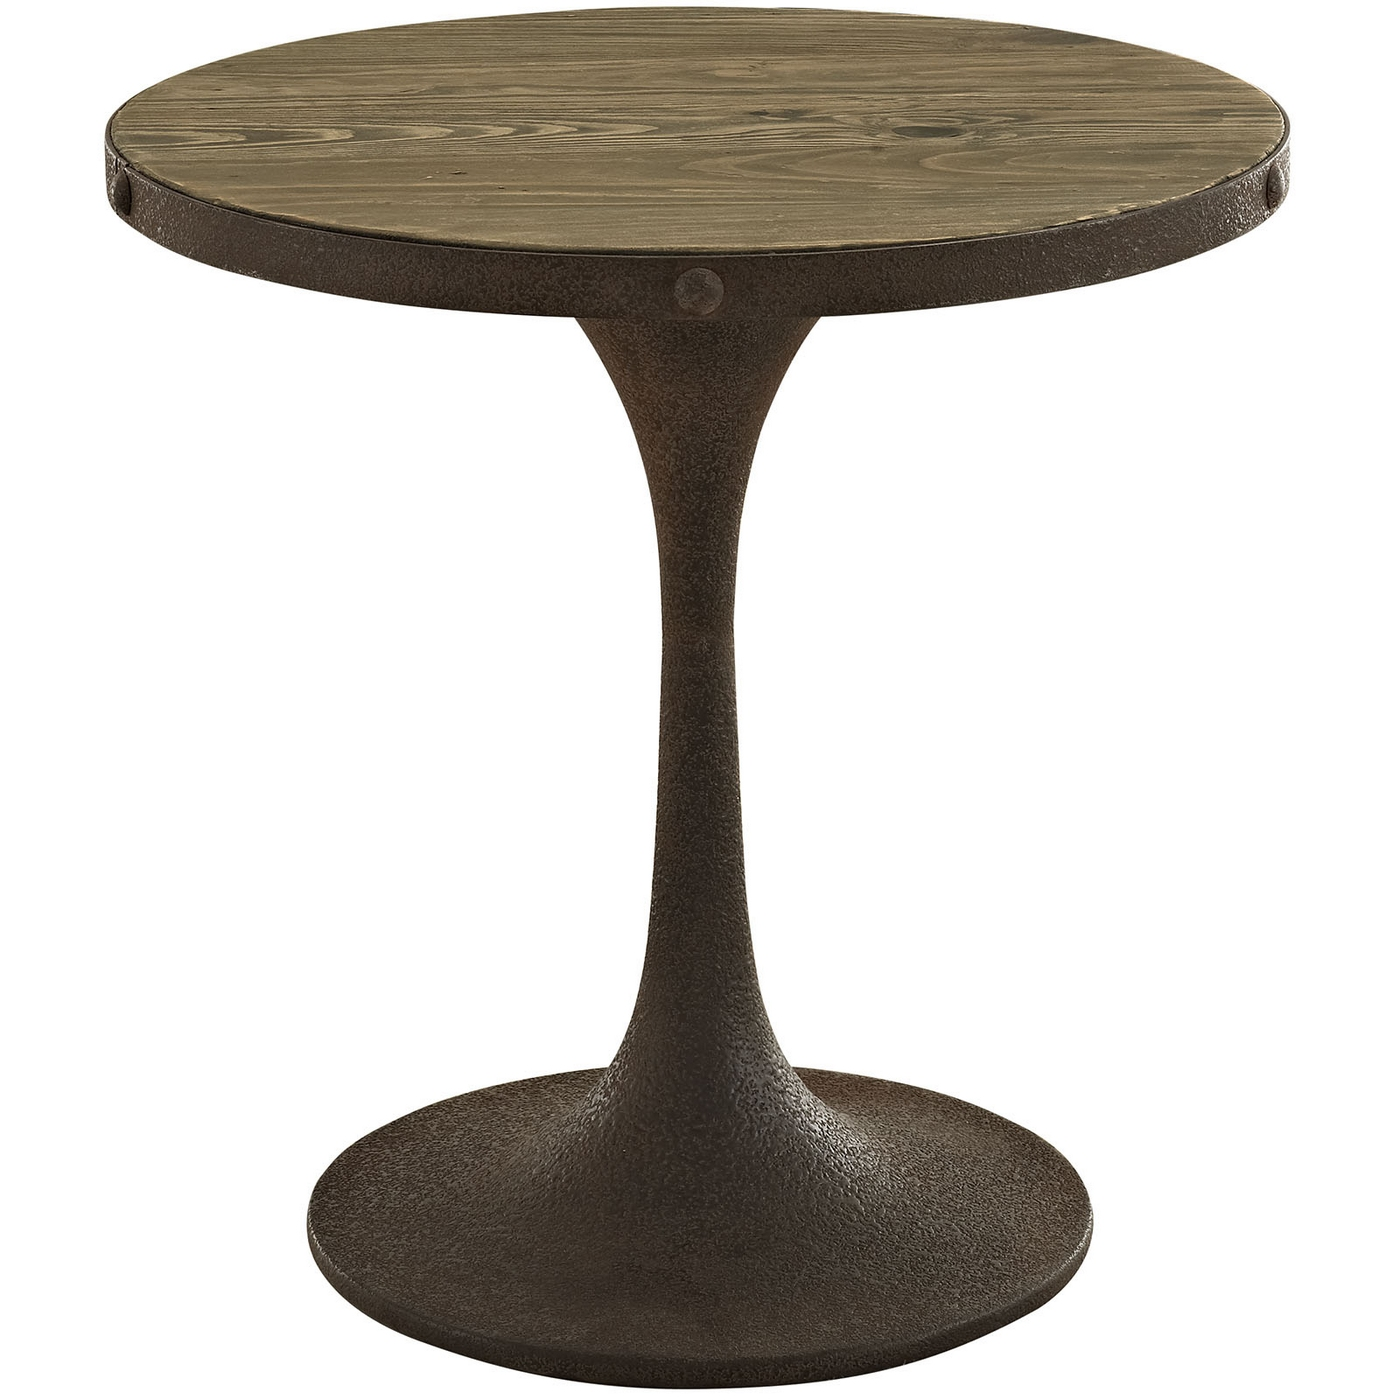 Drive rustic round wood top side table w iron pedestal for Side table base